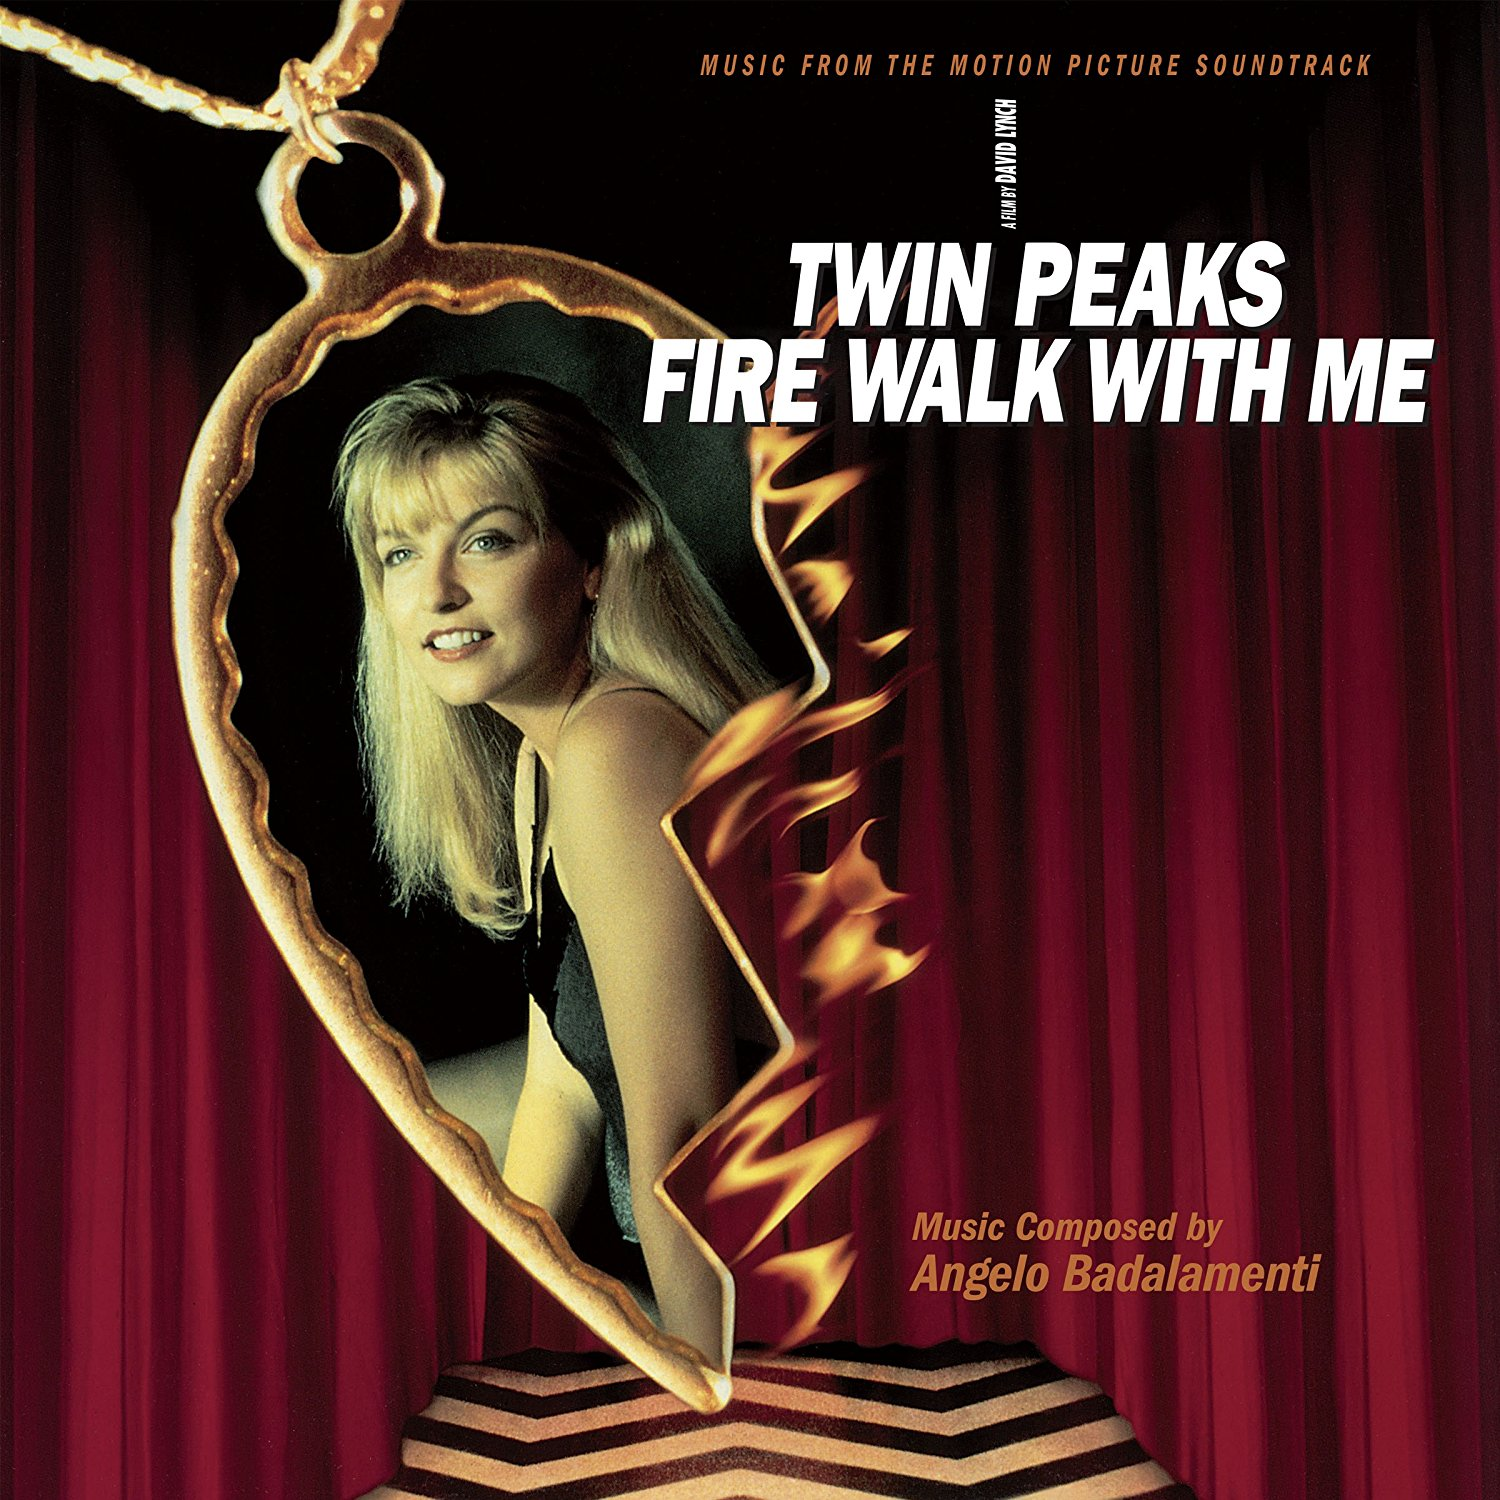 Twin Peaks - Fire walk with me - Fuoco cammina con me (1992)